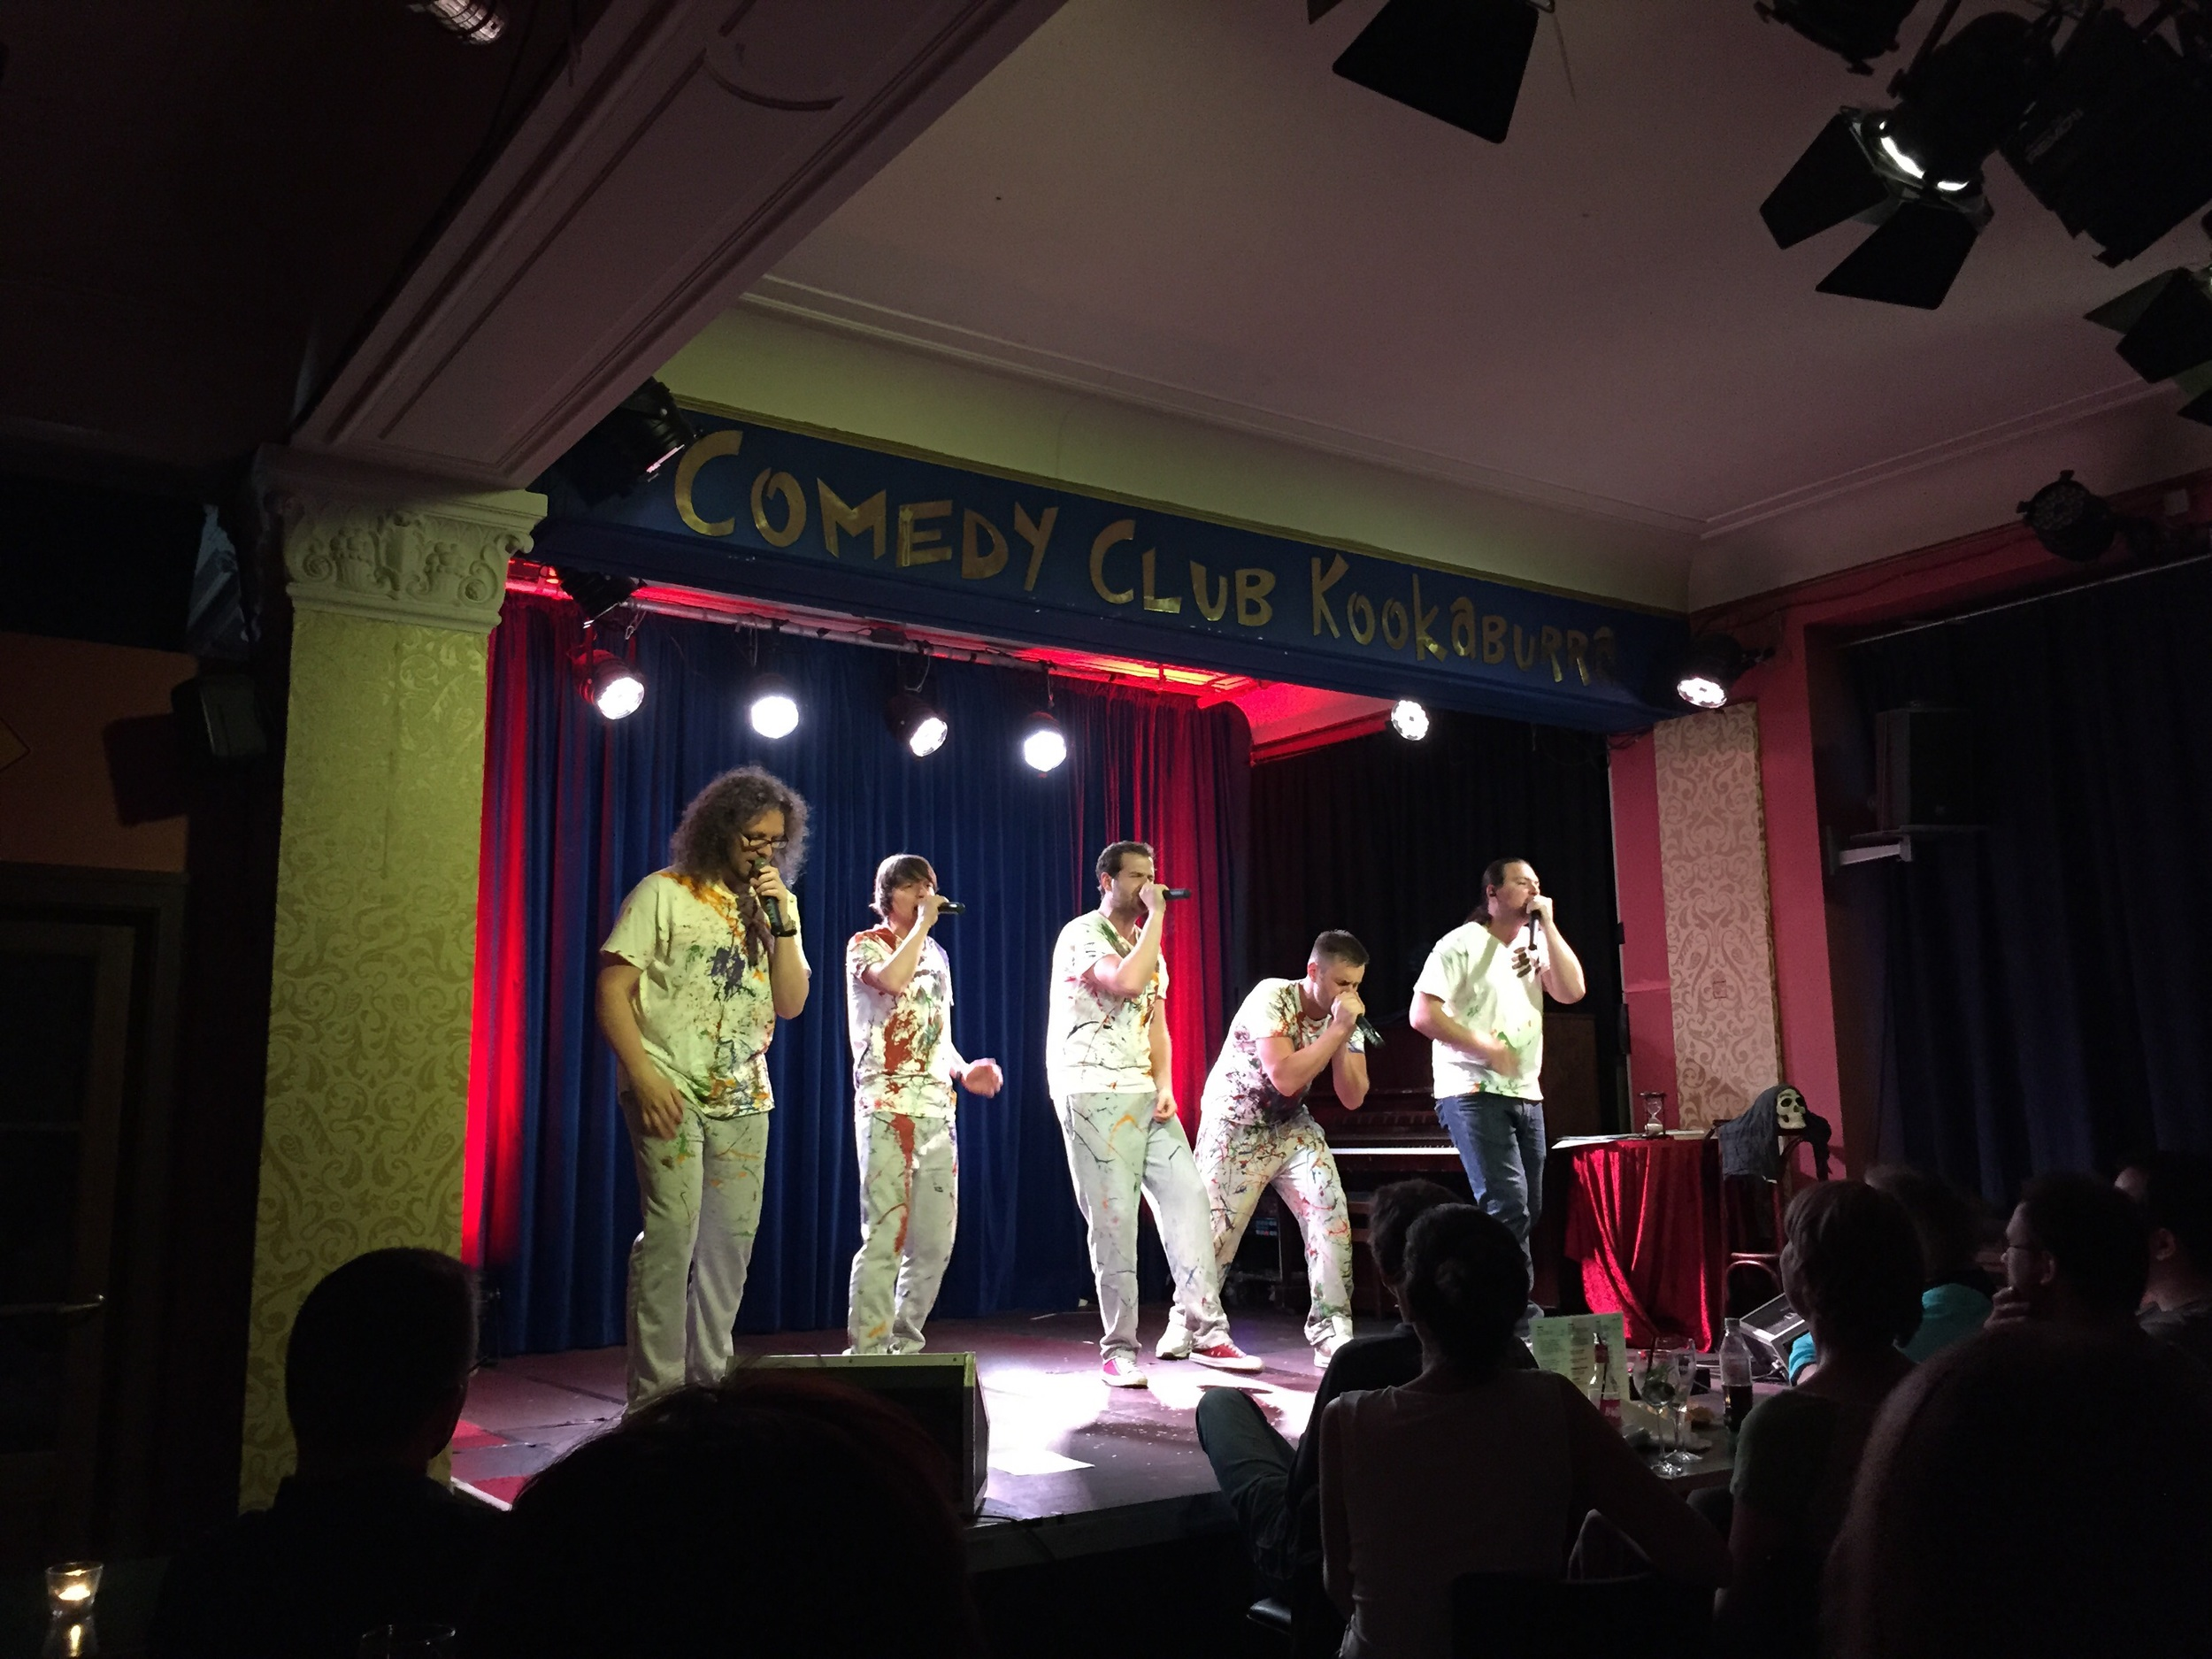 Comdey Club Kookaburra: the second act was an a cappella group called Yeomen. Great fun!